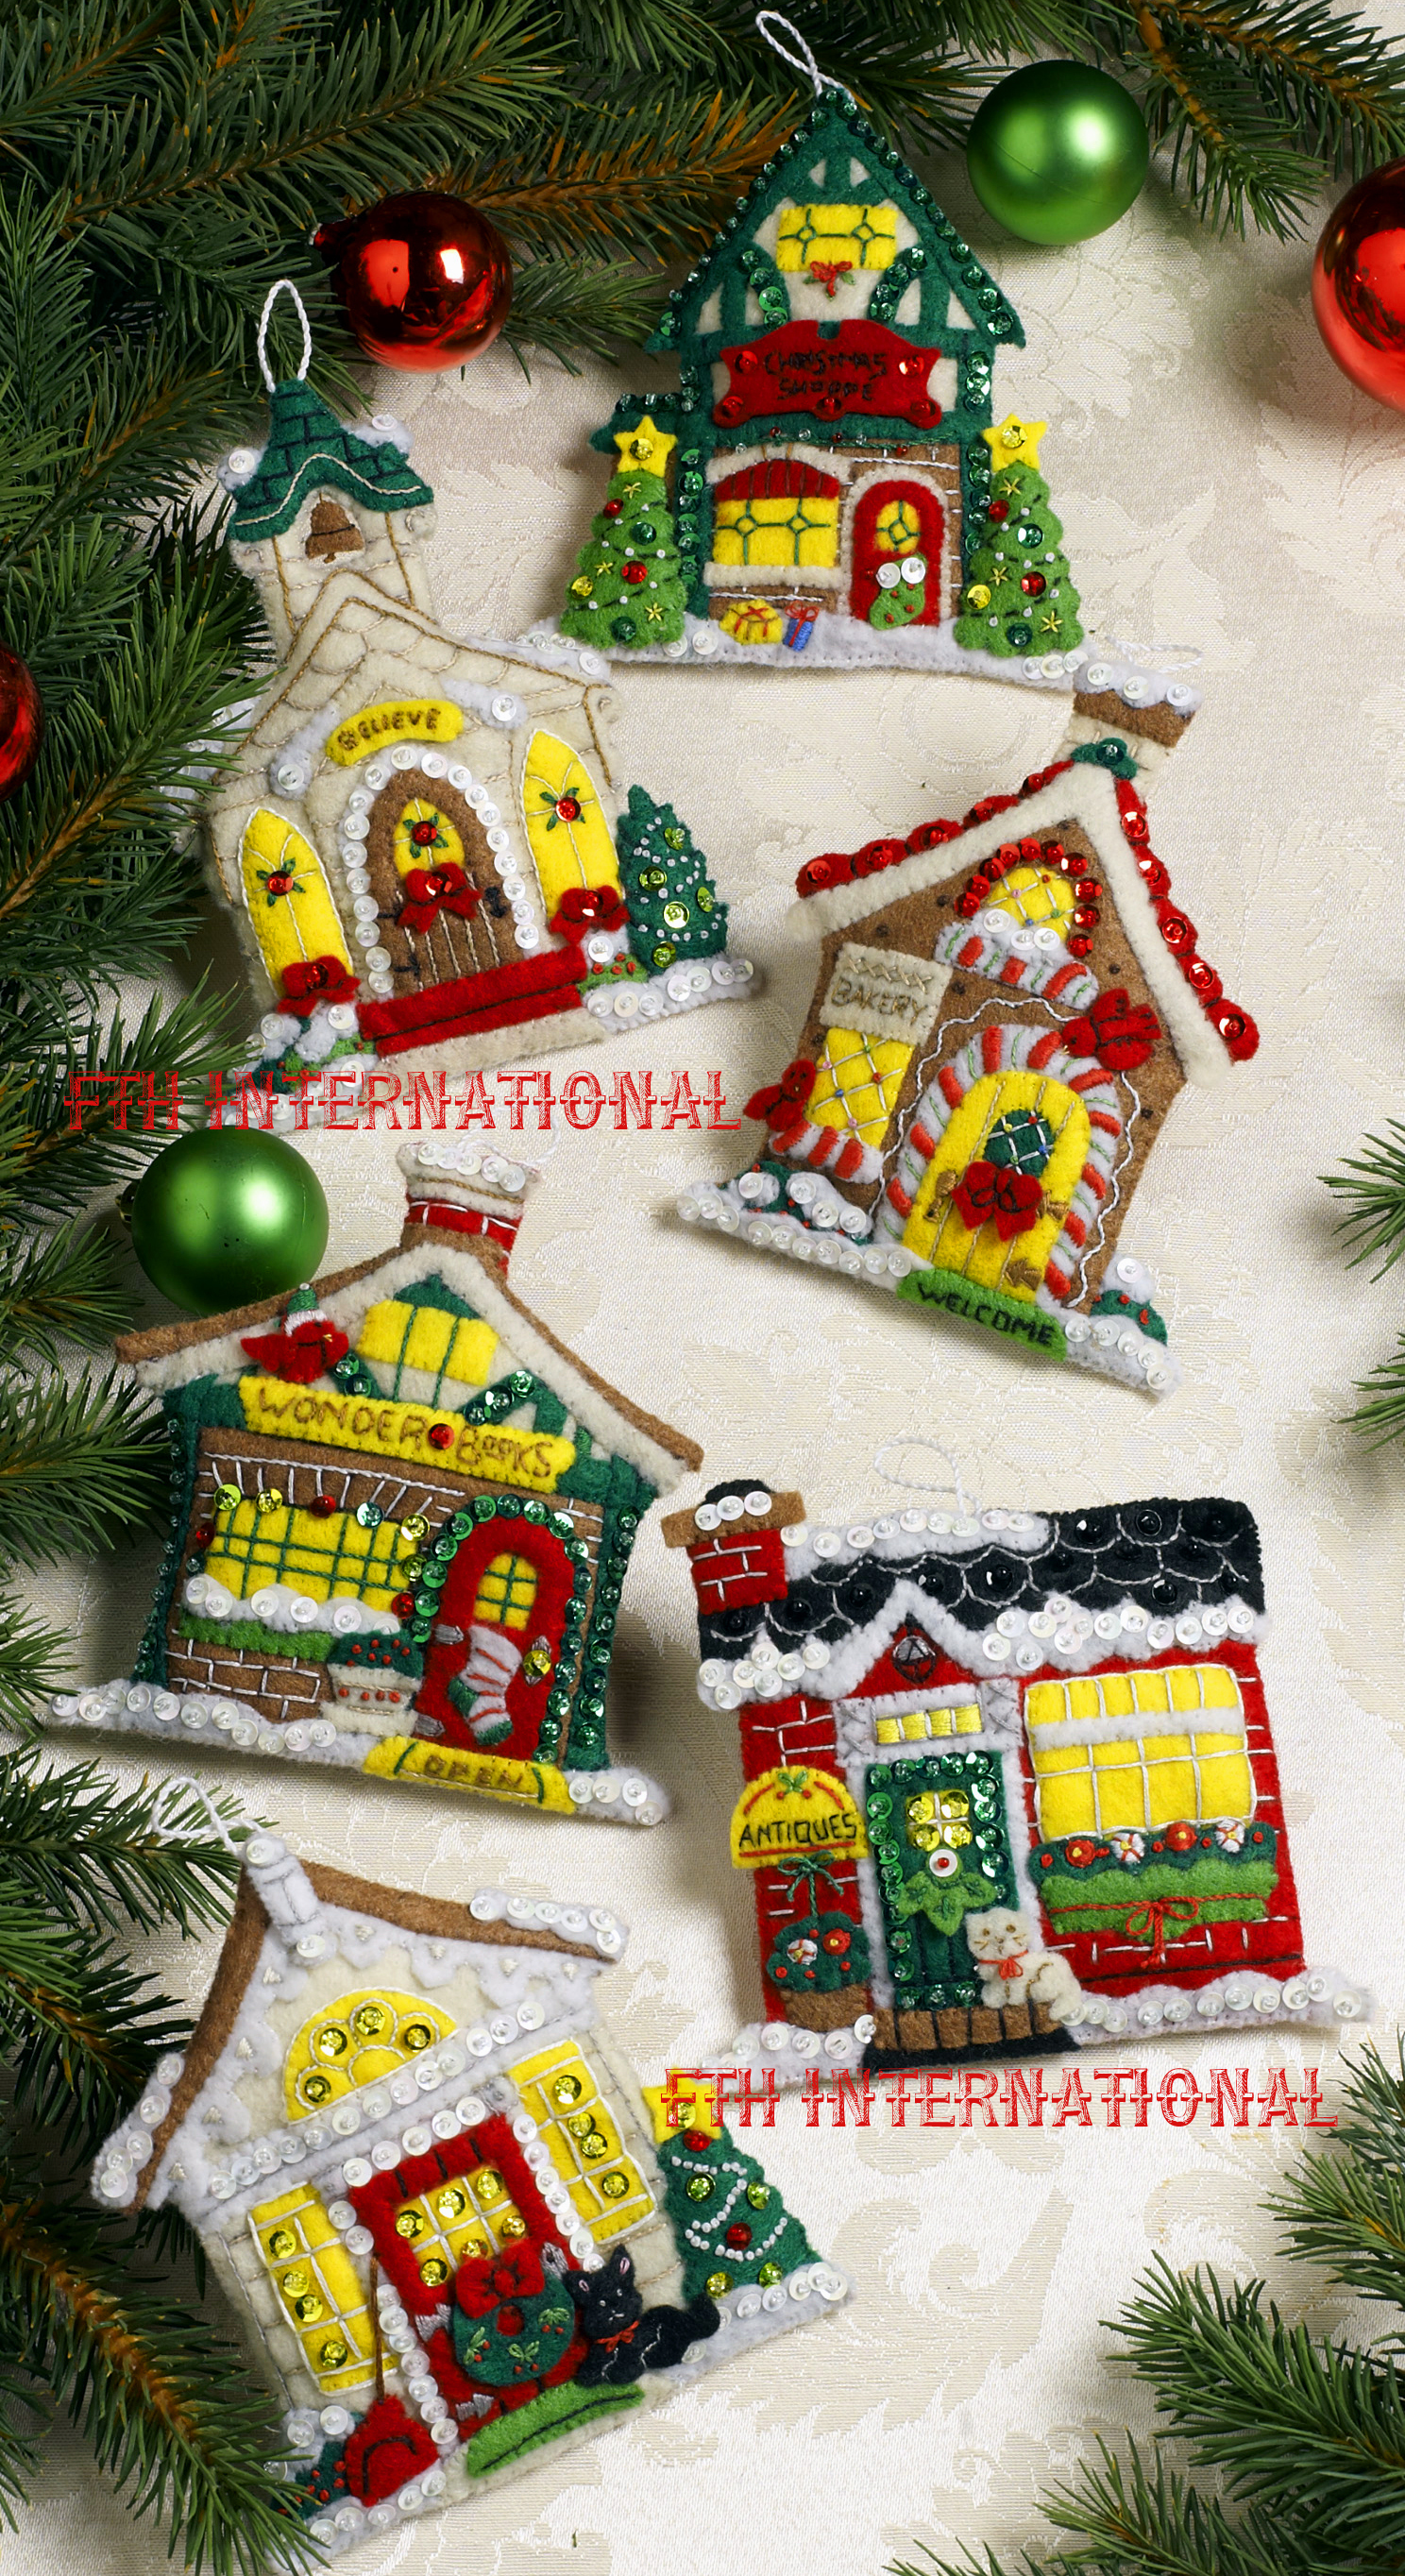 breitville christmas village bucilla felt ornament kit 86387 - Christmas Tree Decorating Ensemble Kits